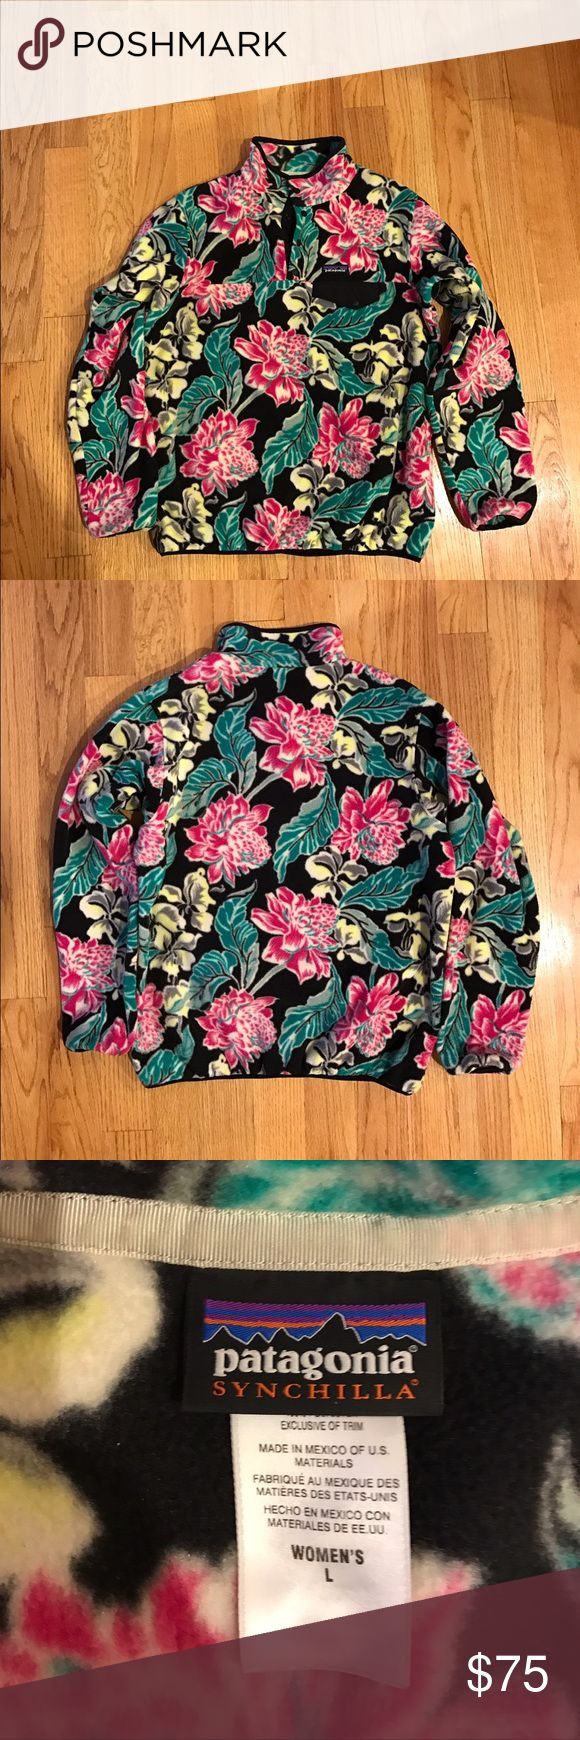 Patagonia Synchilla pull over Patagonia Synchilla jacket. Warm and fuzzy! Beautiful pattern. Too big for me. Great condition. No rips stains or pilling. Offers welcome. Patagonia Sweaters